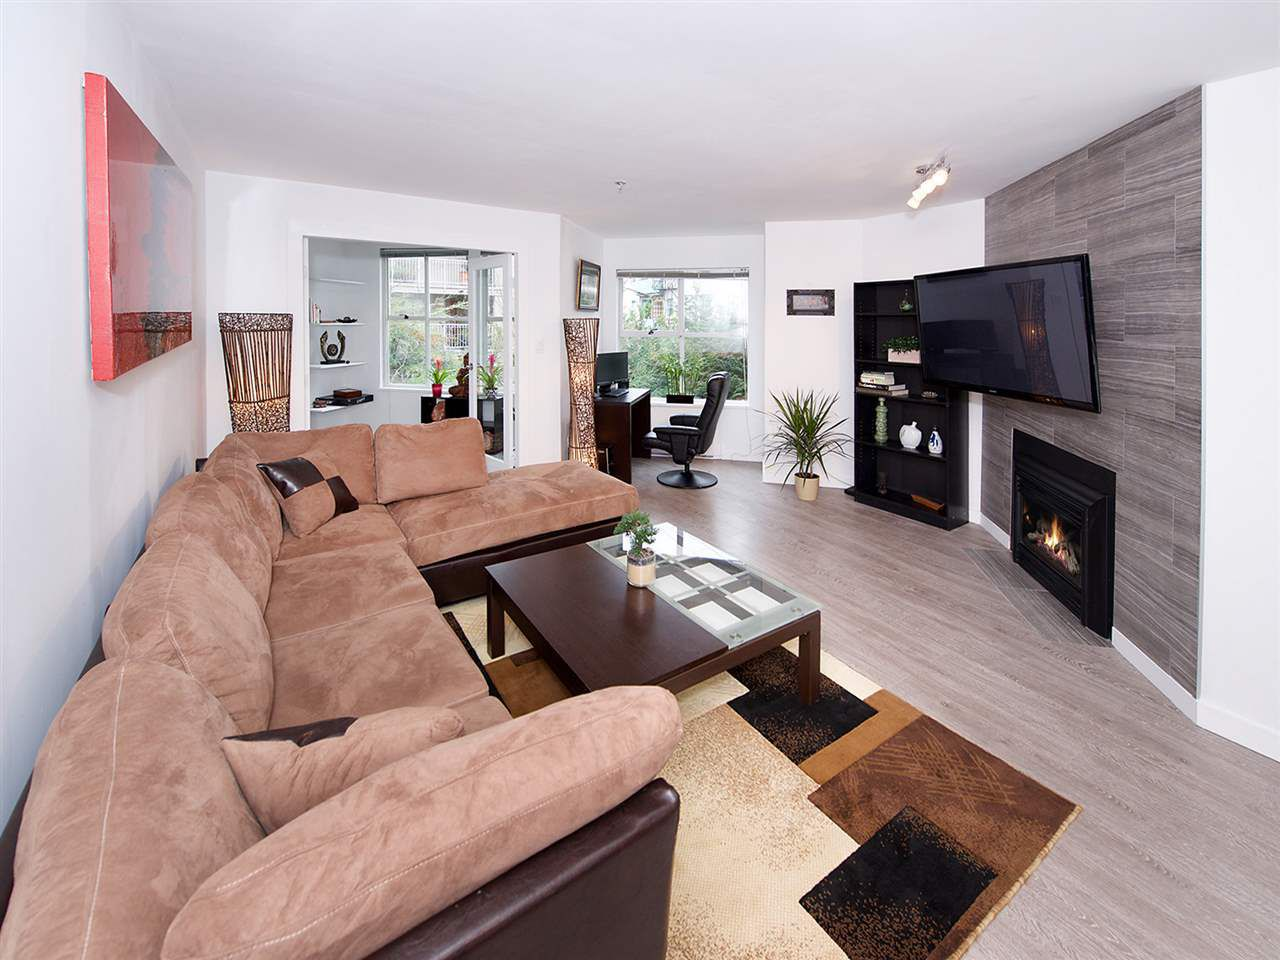 Main Photo: 207 1465 COMOX STREET in Vancouver: West End VW Condo for sale (Vancouver West)  : MLS®# R2024122